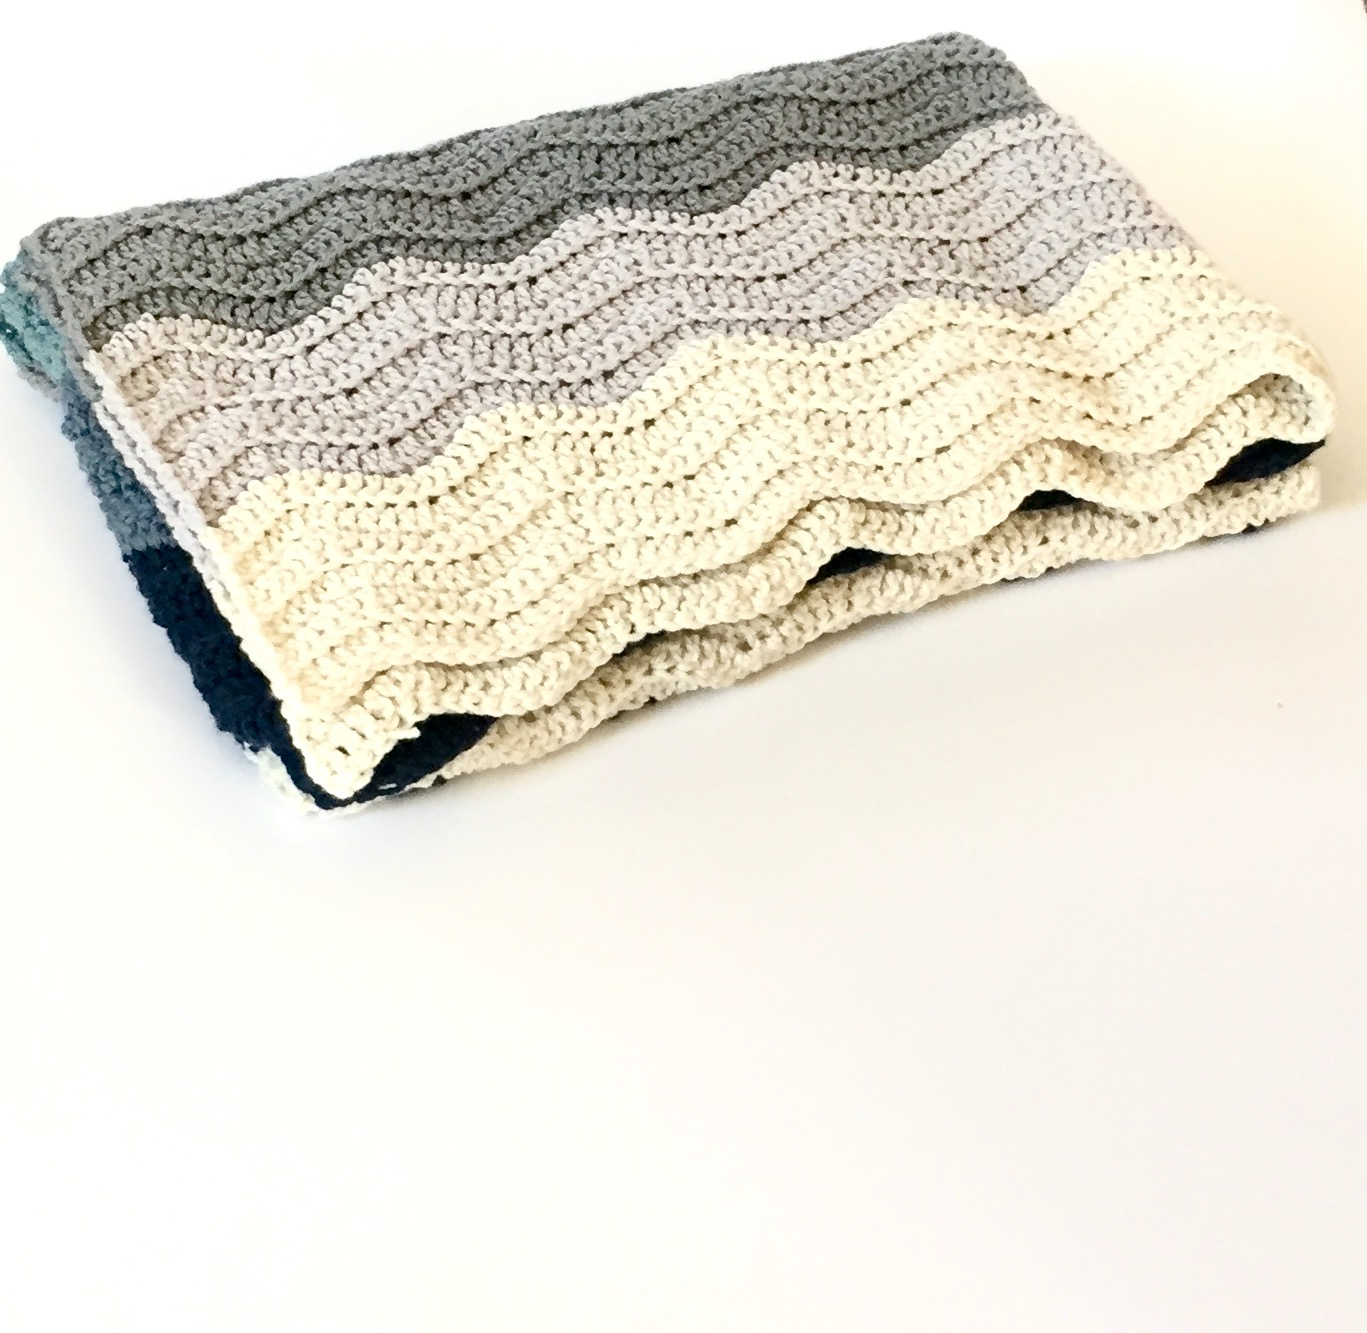 ... crochet pattern in blues. Handmade Merino blanket ready for purchase